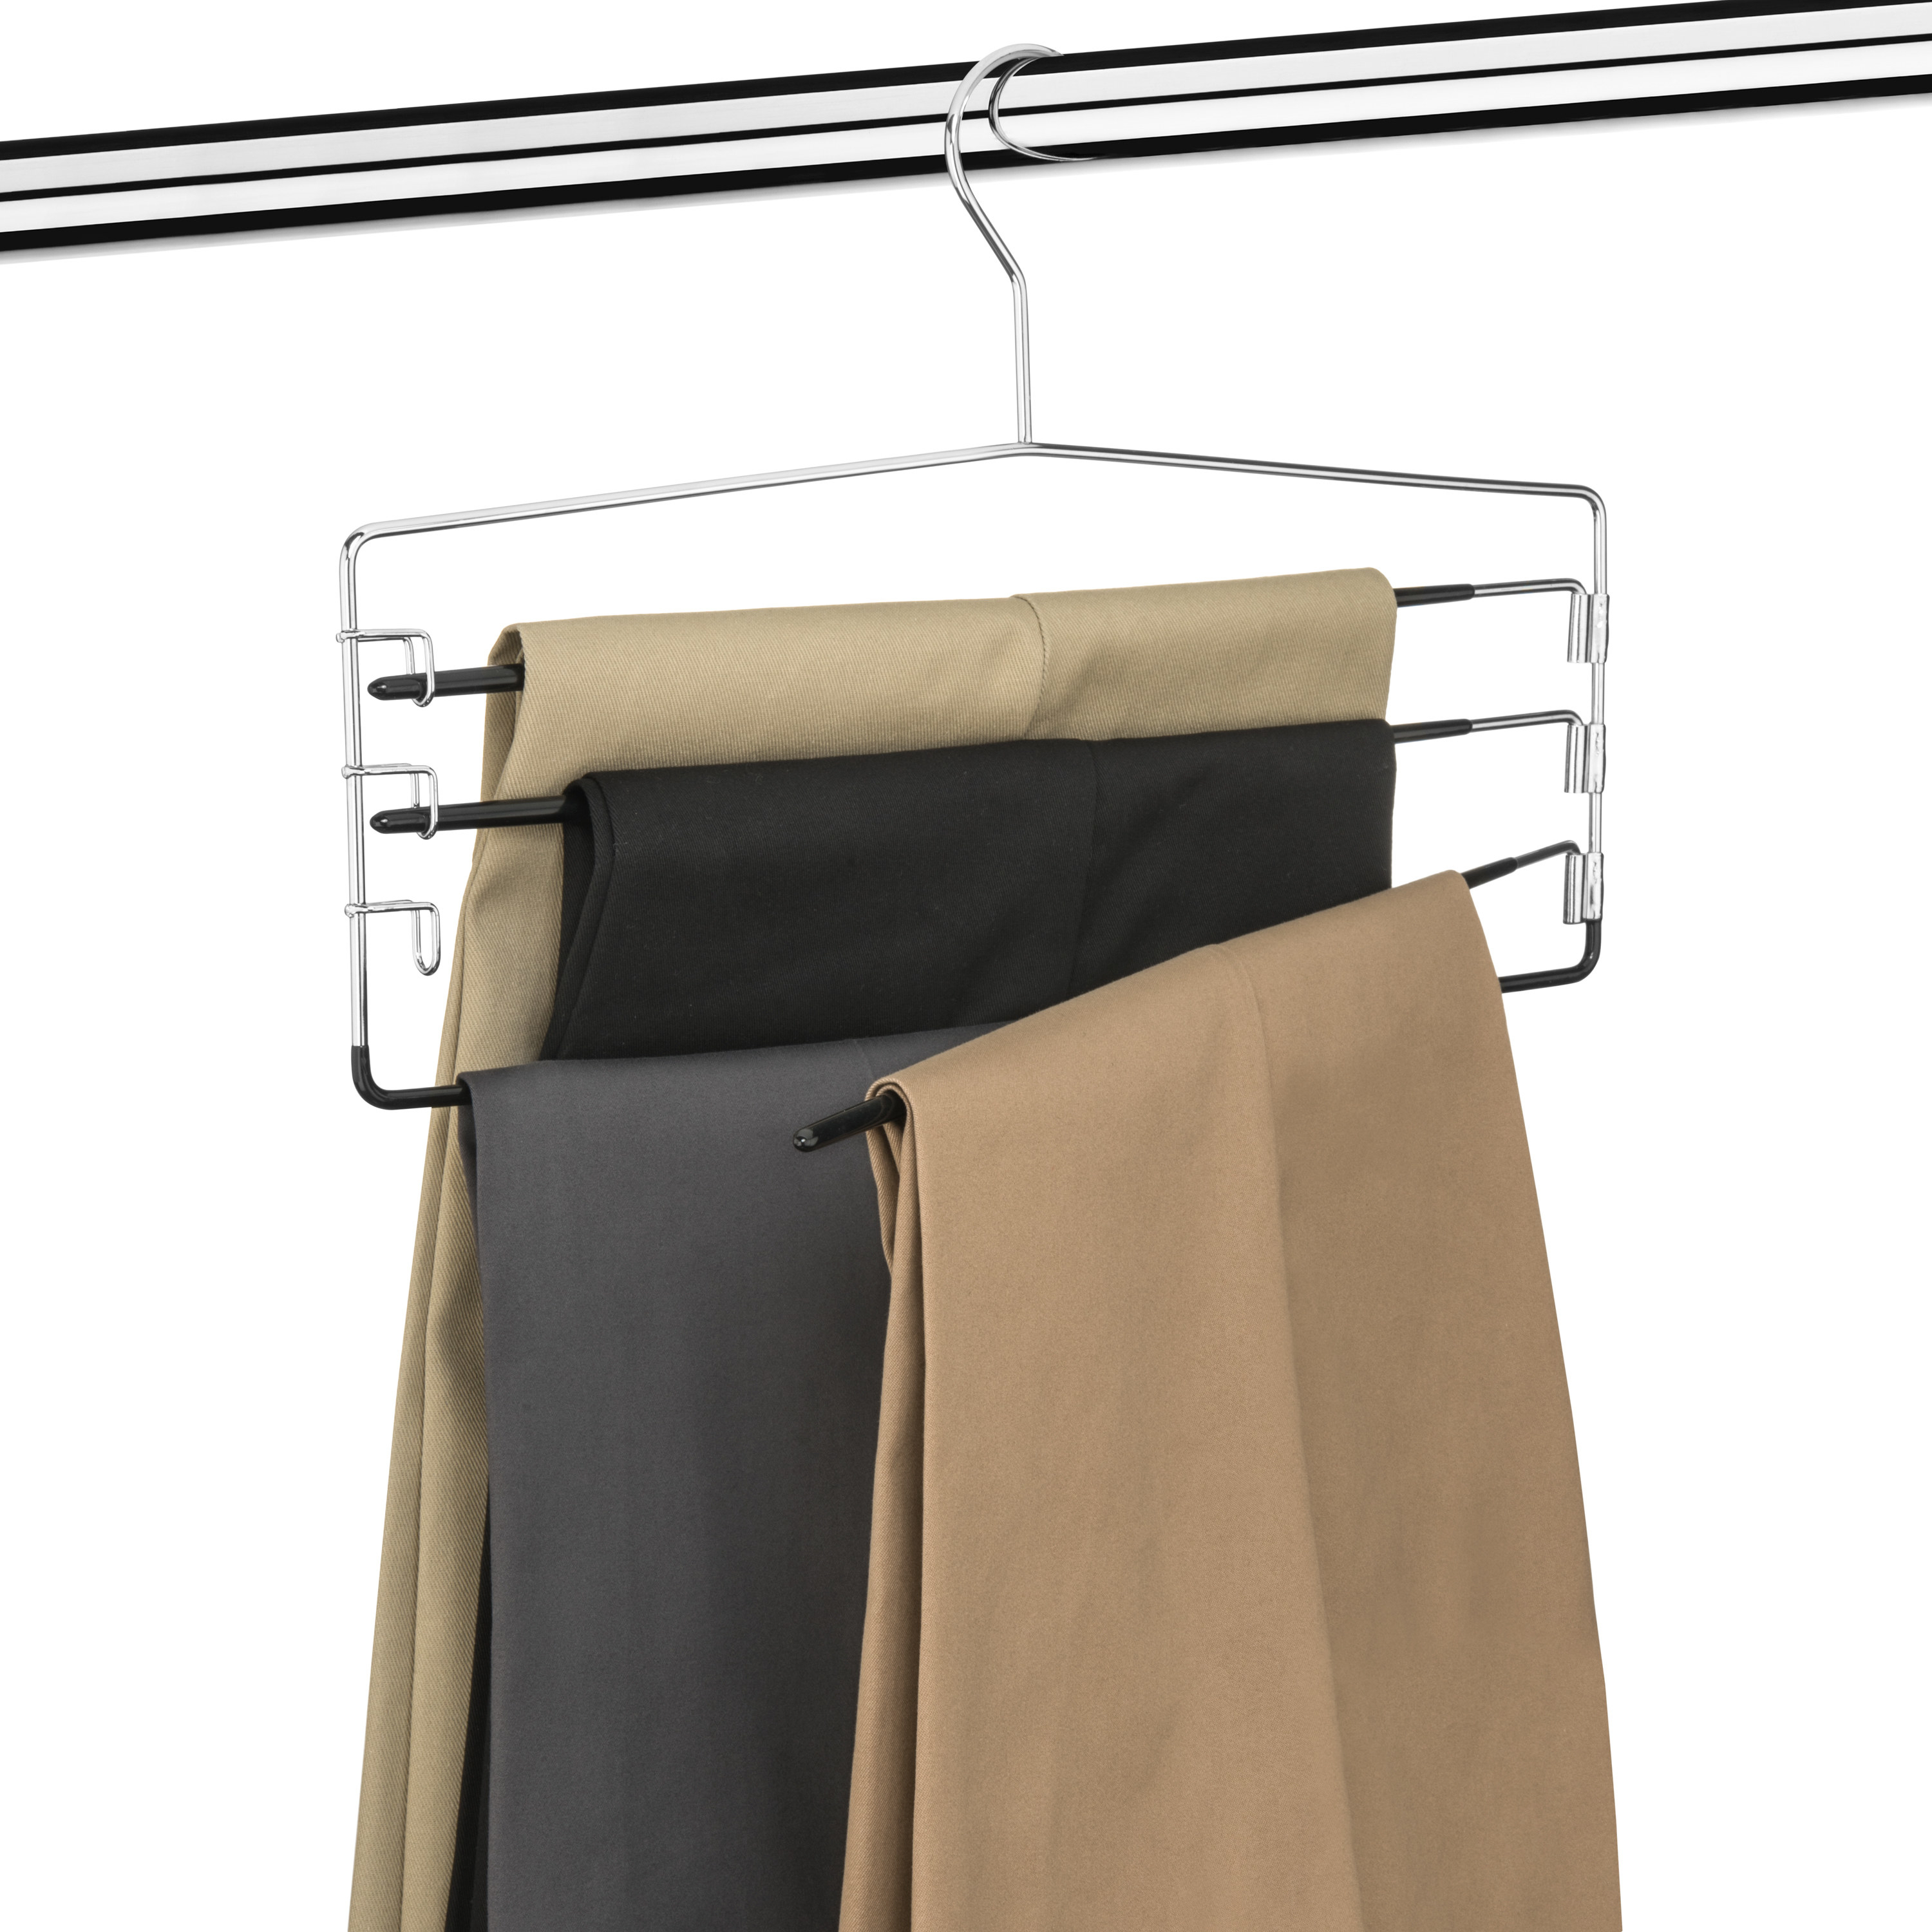 Pants hanging from tiered hanger in closet